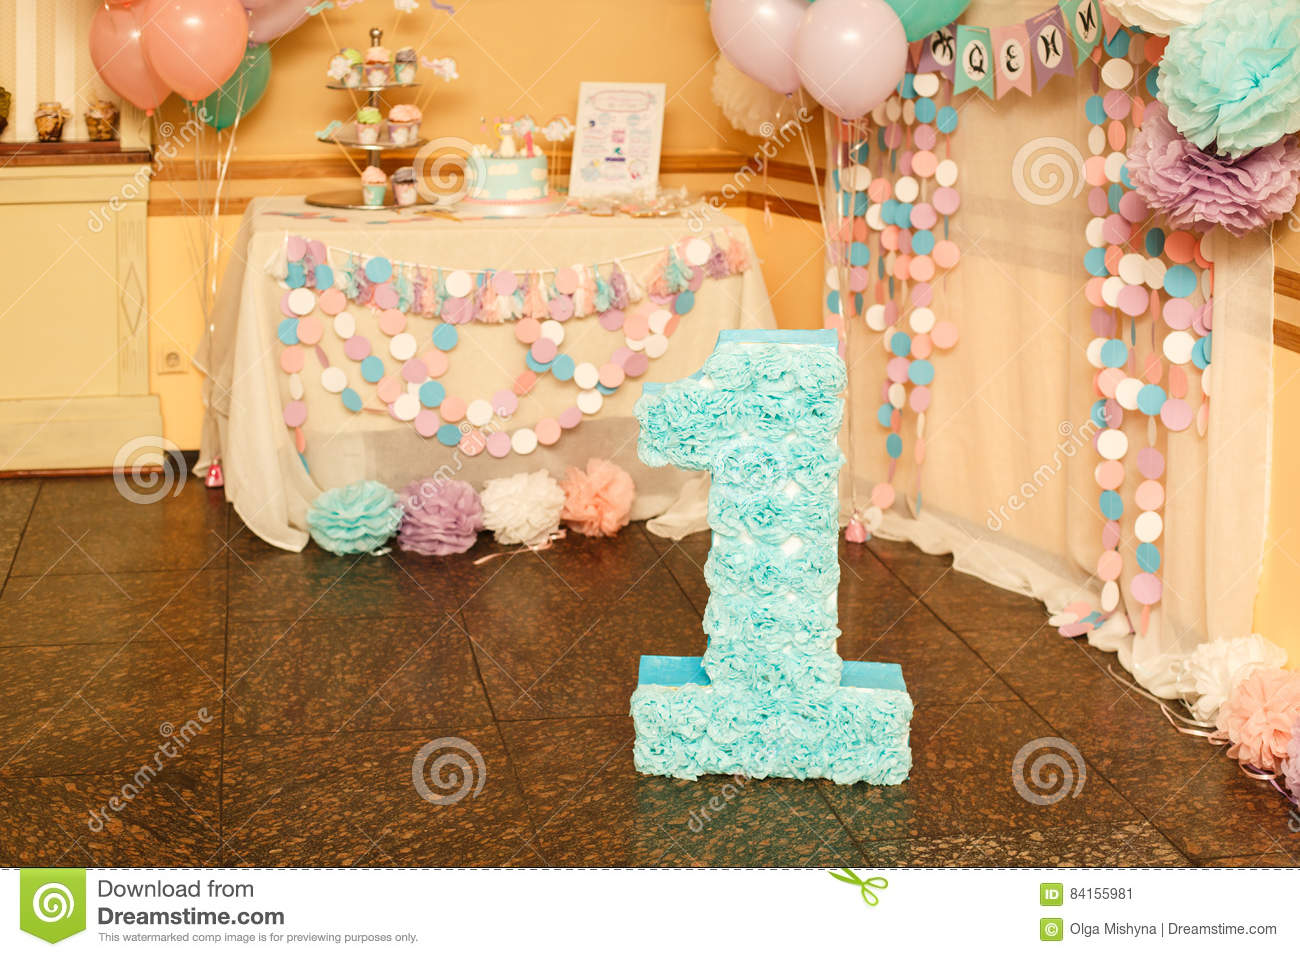 Ideas Para Decorar Un Cumpleaños De Niña Stylish Birthday Decorations For Little Girl On Her First